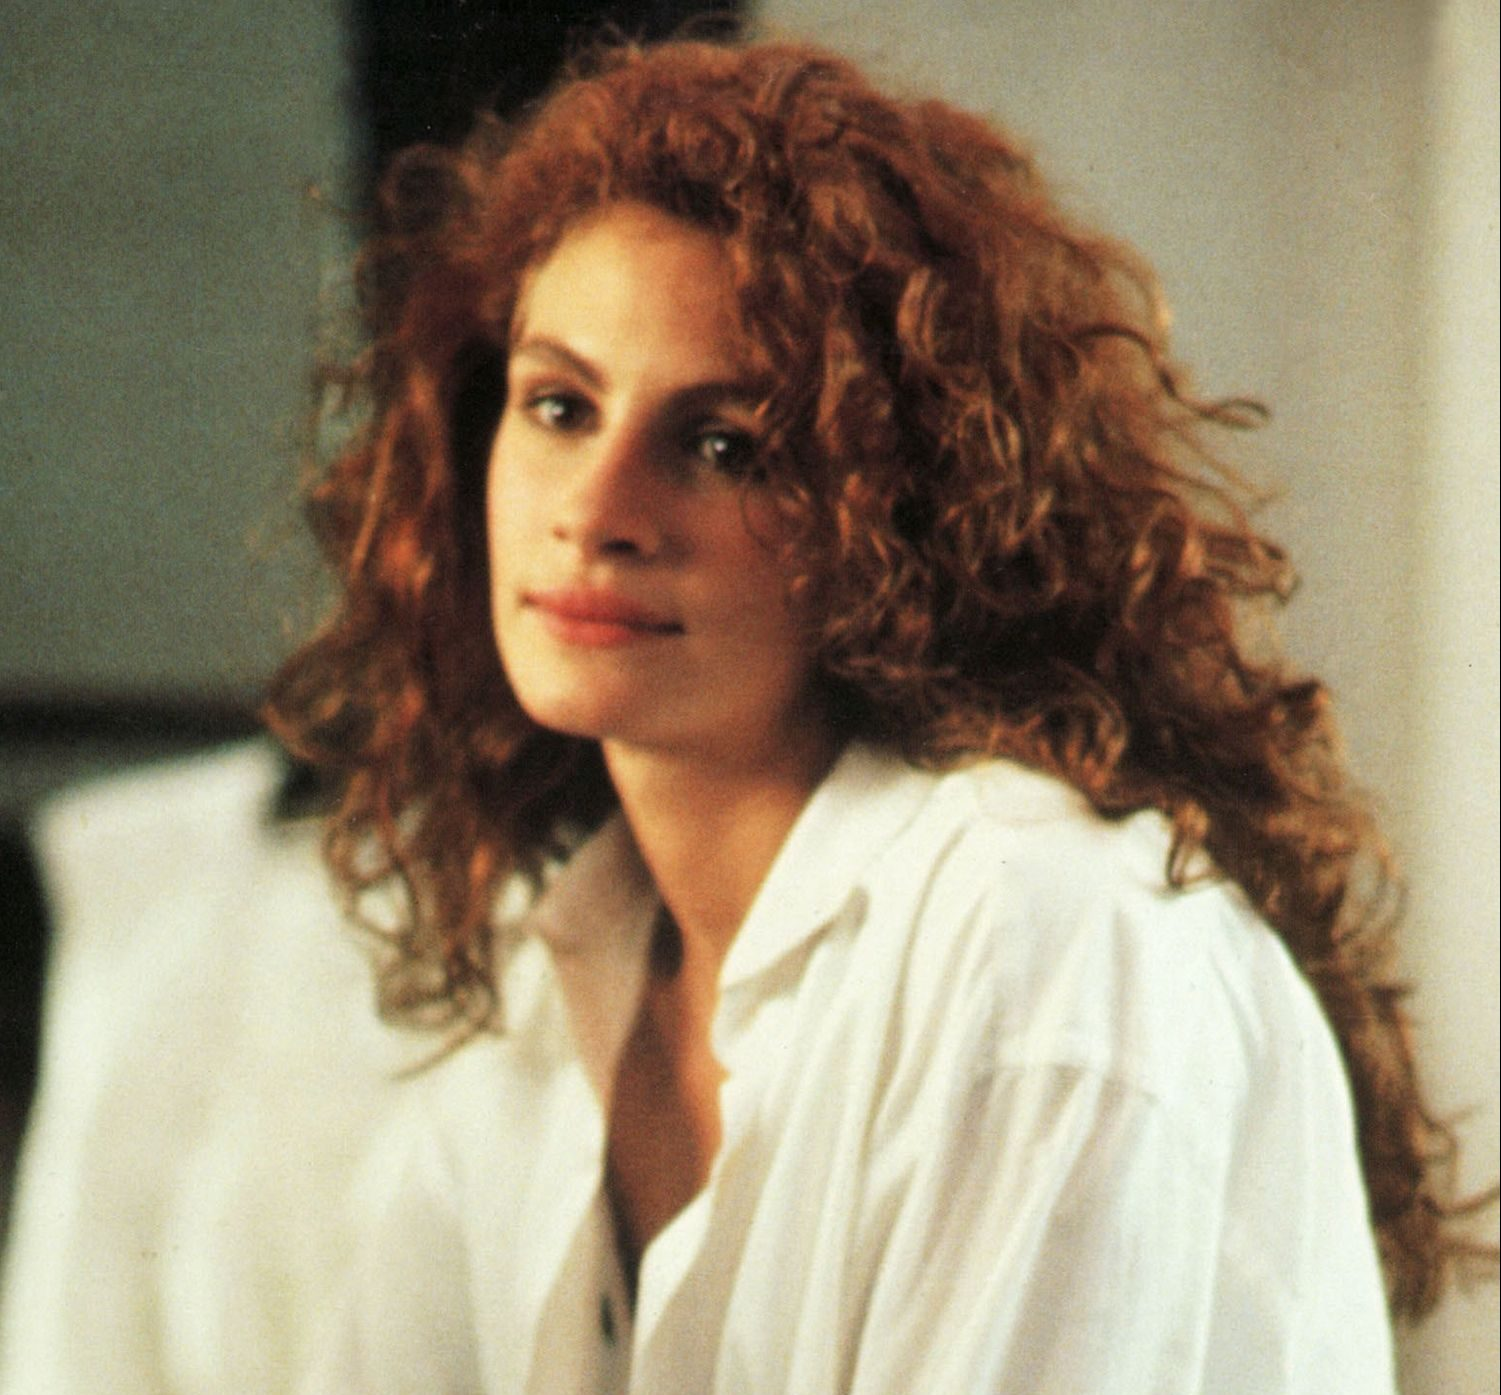 hbz perms julia roberts htra230 vv041 h e1623424966162 80s Fashion Trends We Should Leave Behind For Good